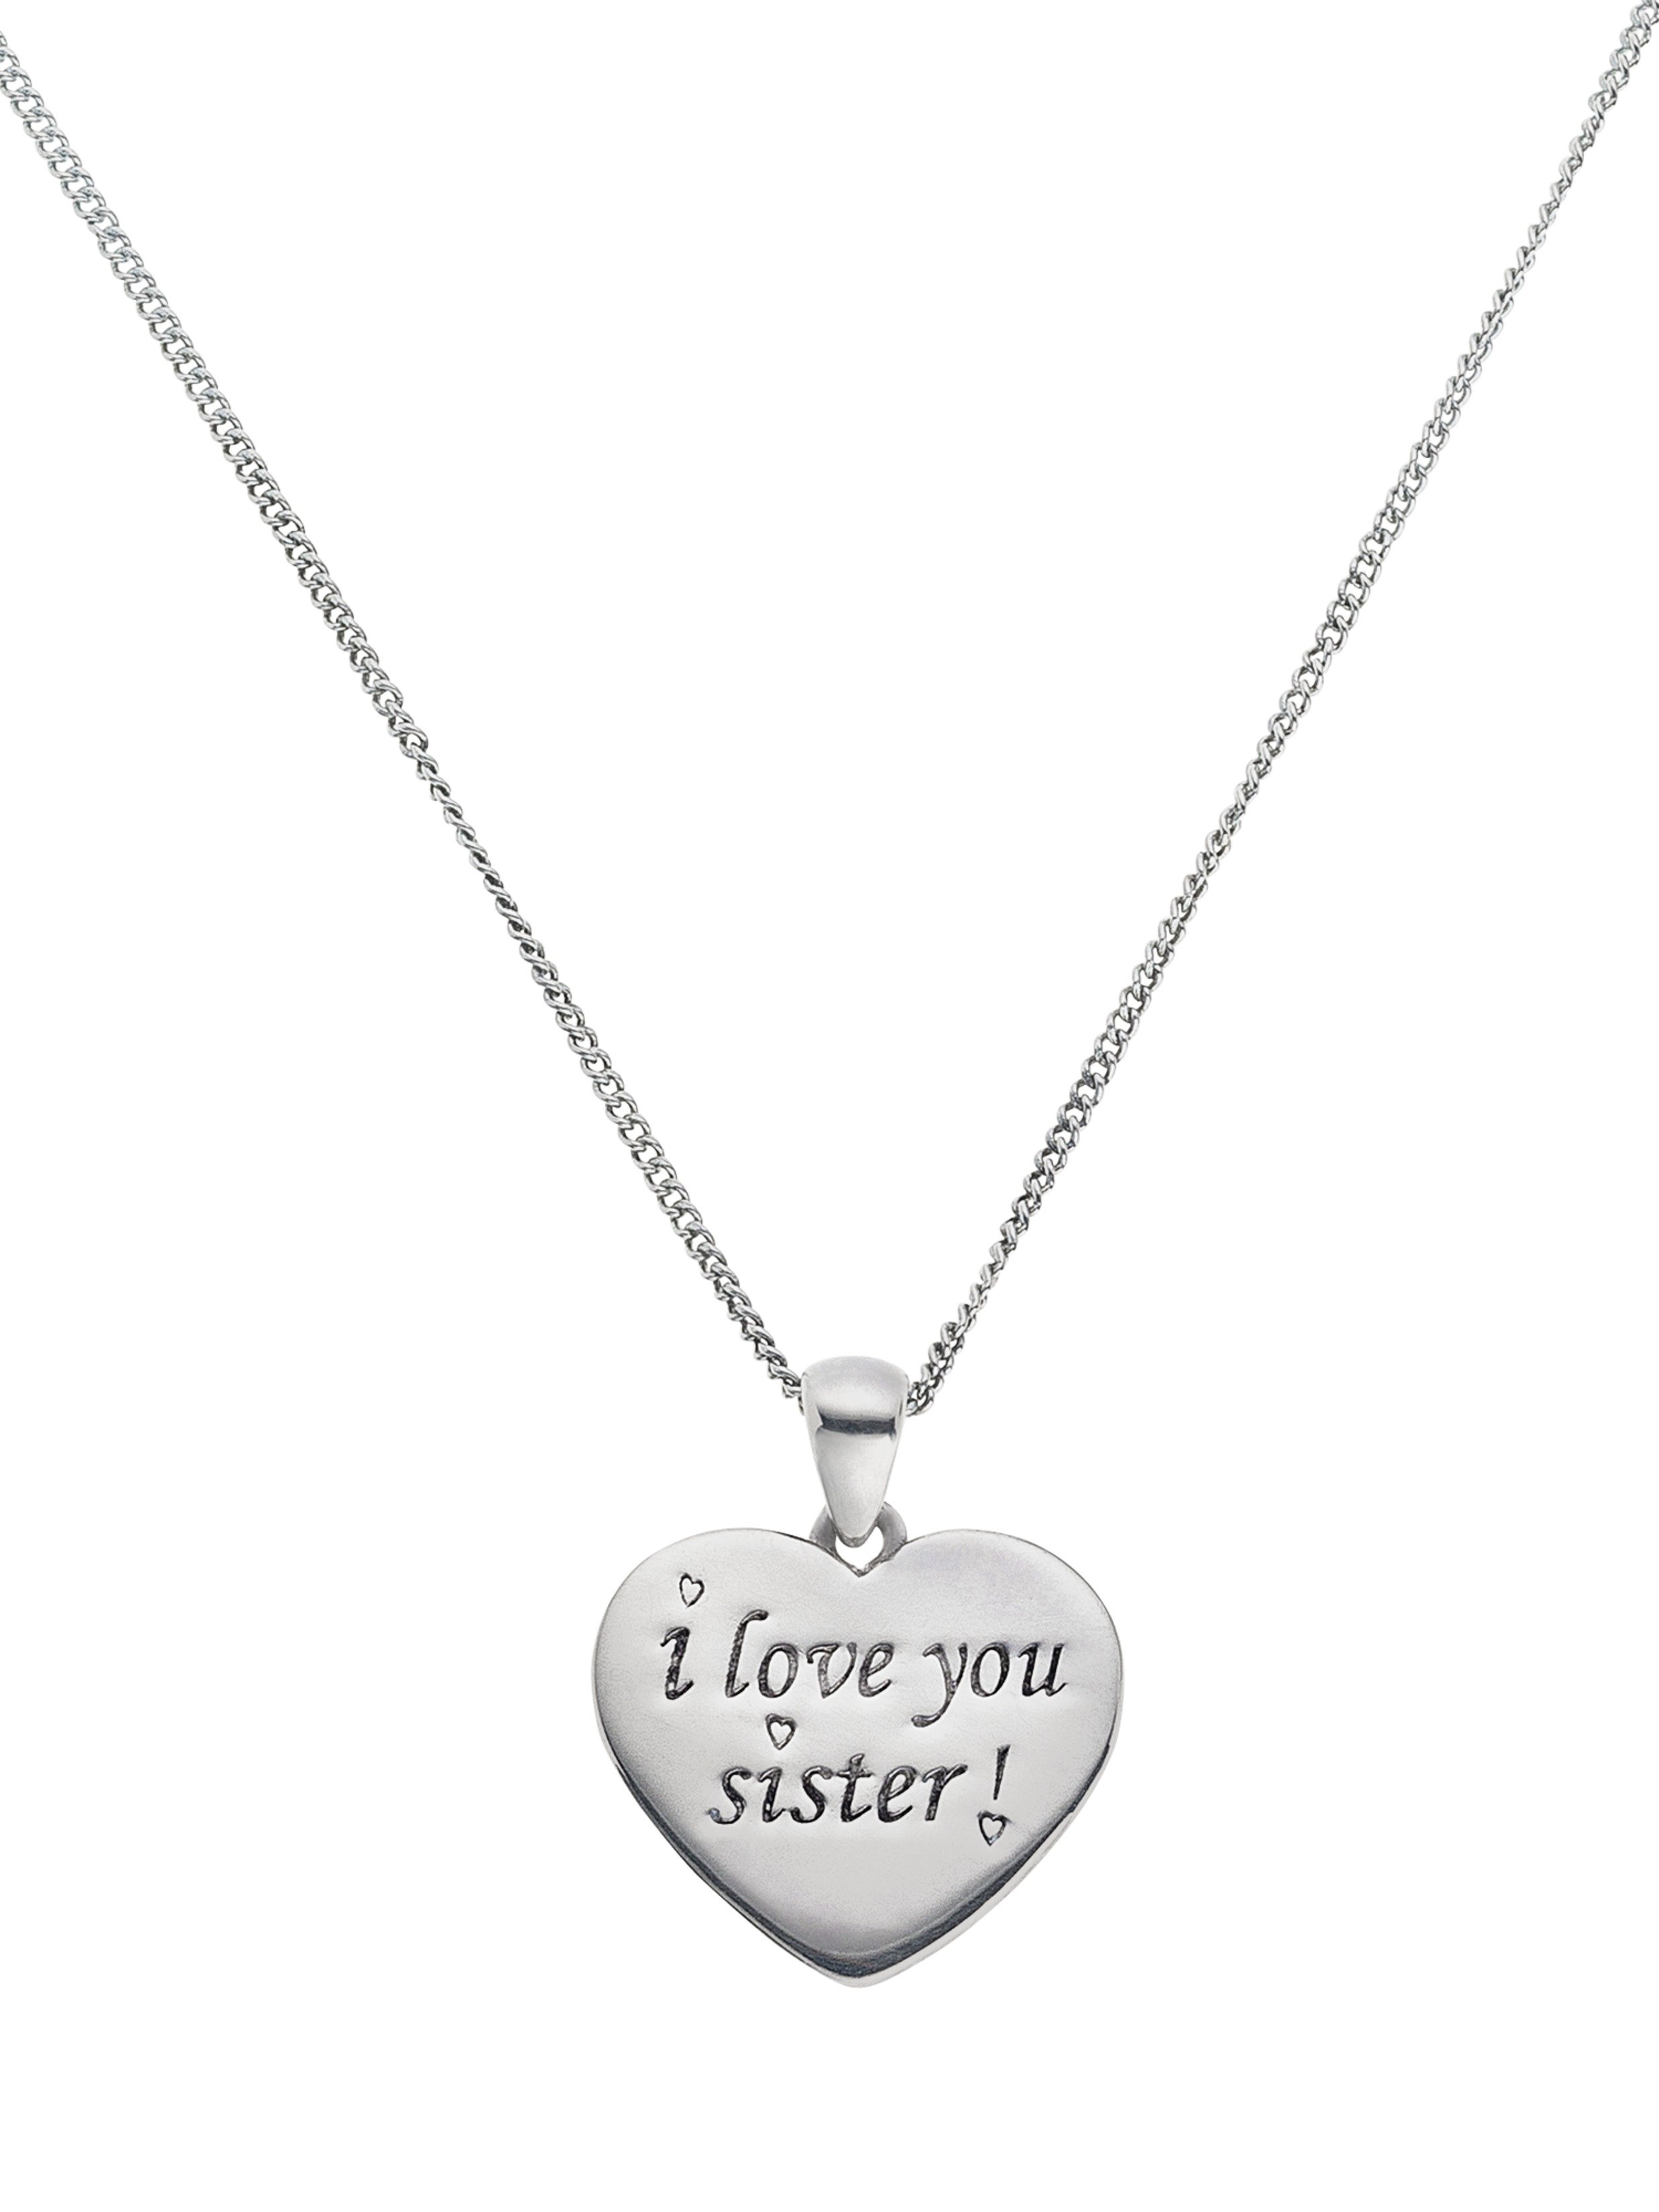 Image of Sterling Silver - 'I Love You Sister' Pendant.